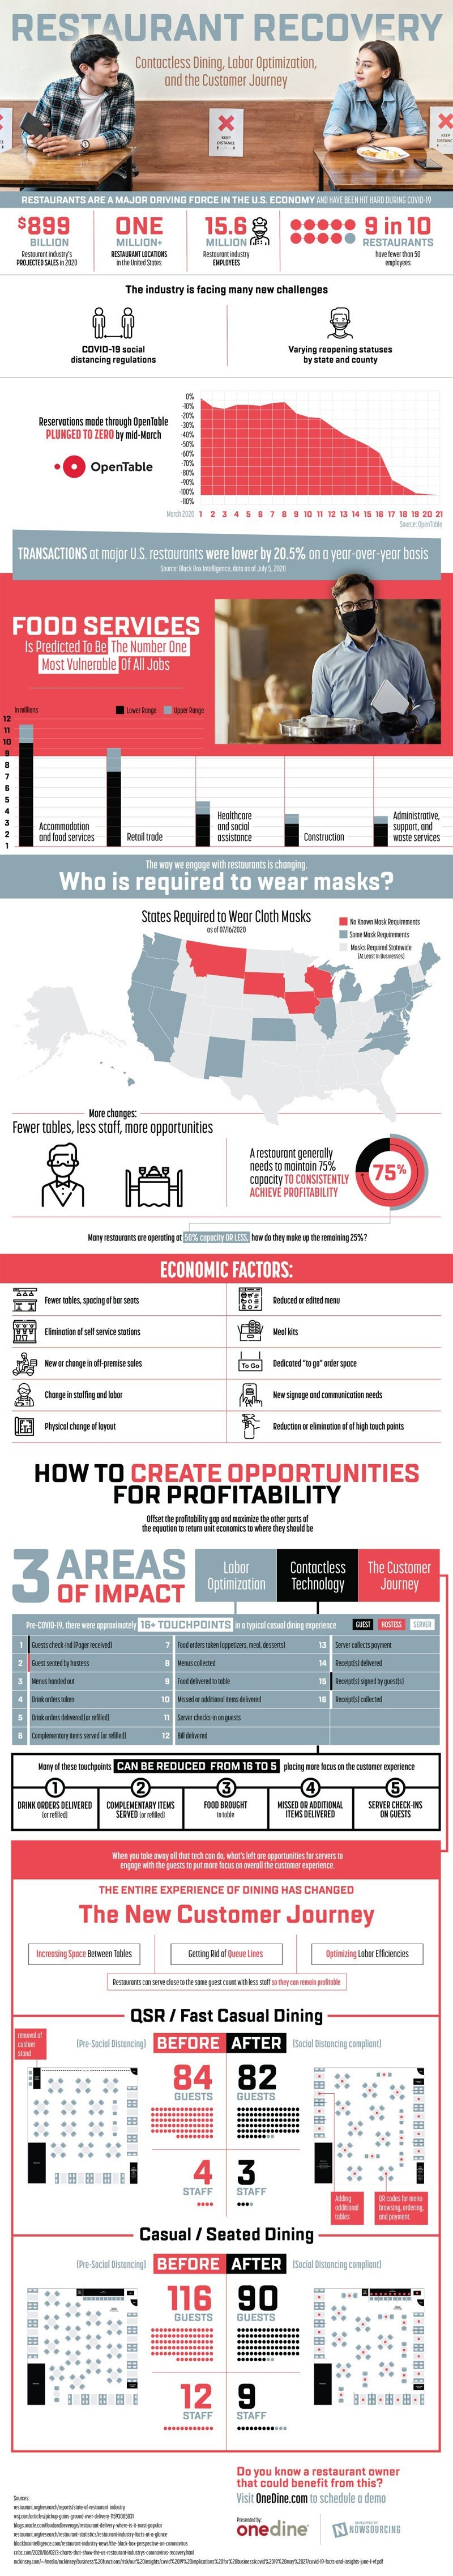 Restaurant Recovery: Contactless Dining, Labor Optimization and the Customer Journey #infographic